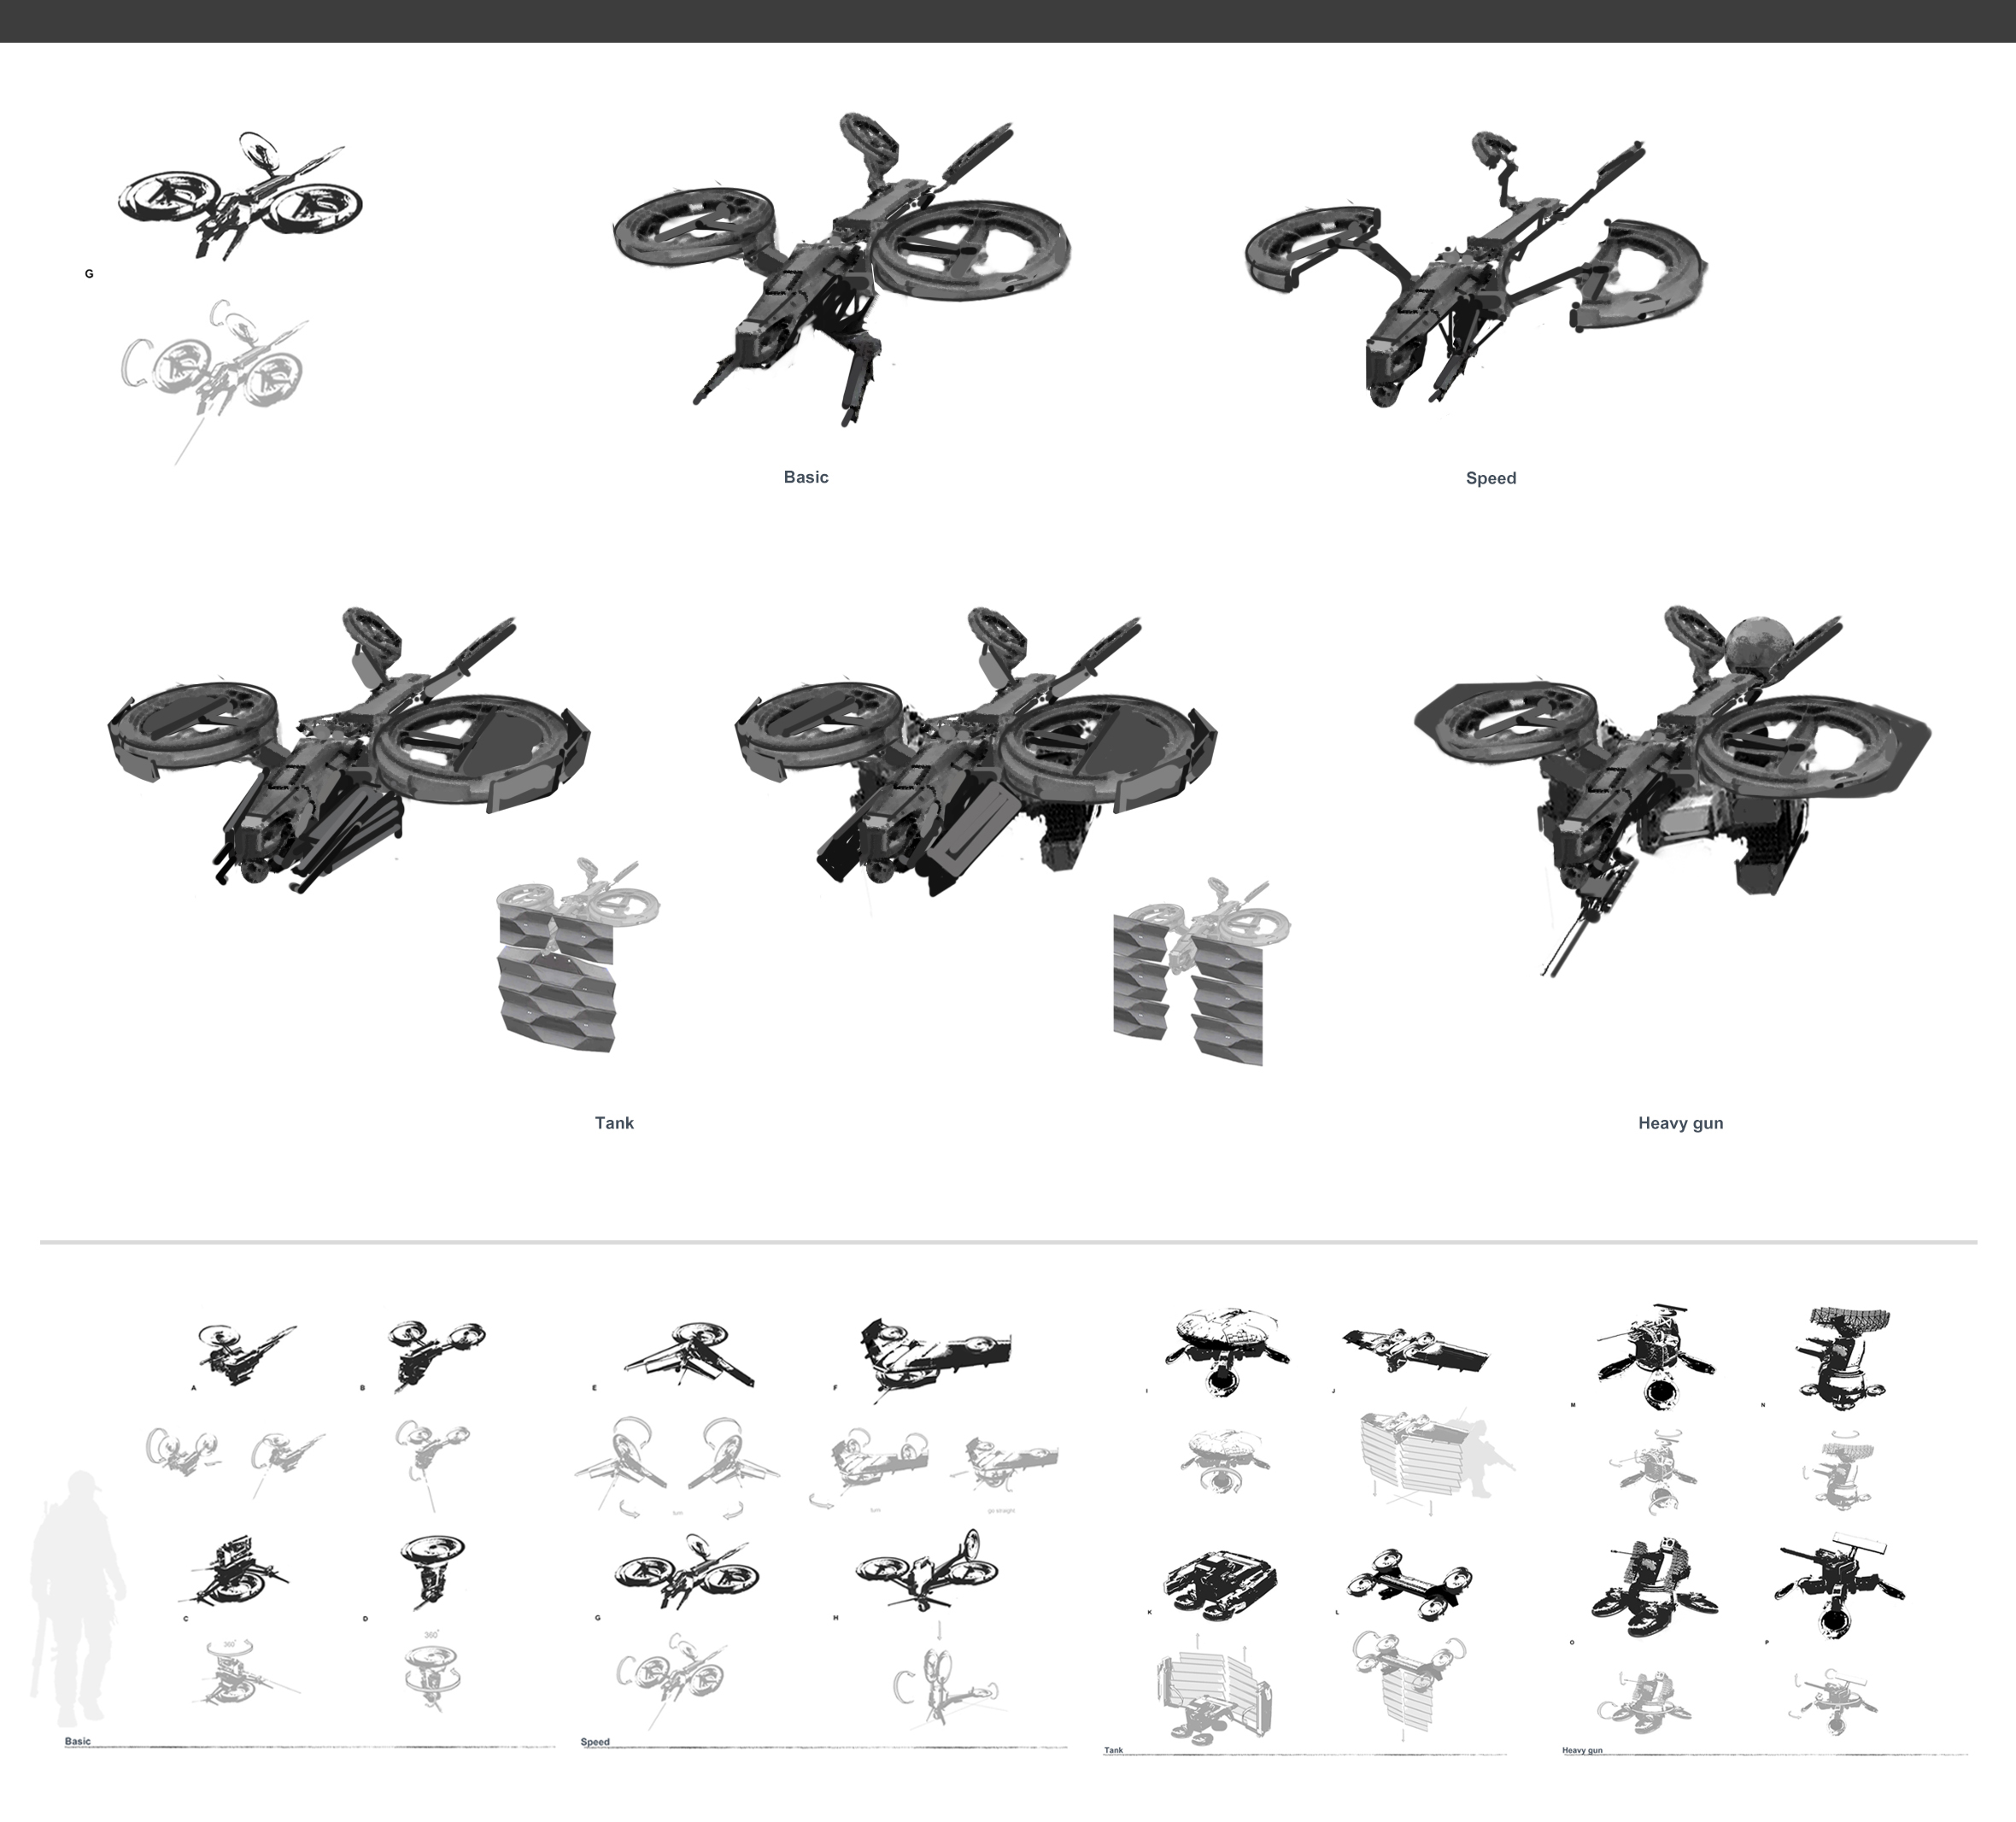 Drones_Refine Sketches2.jpg